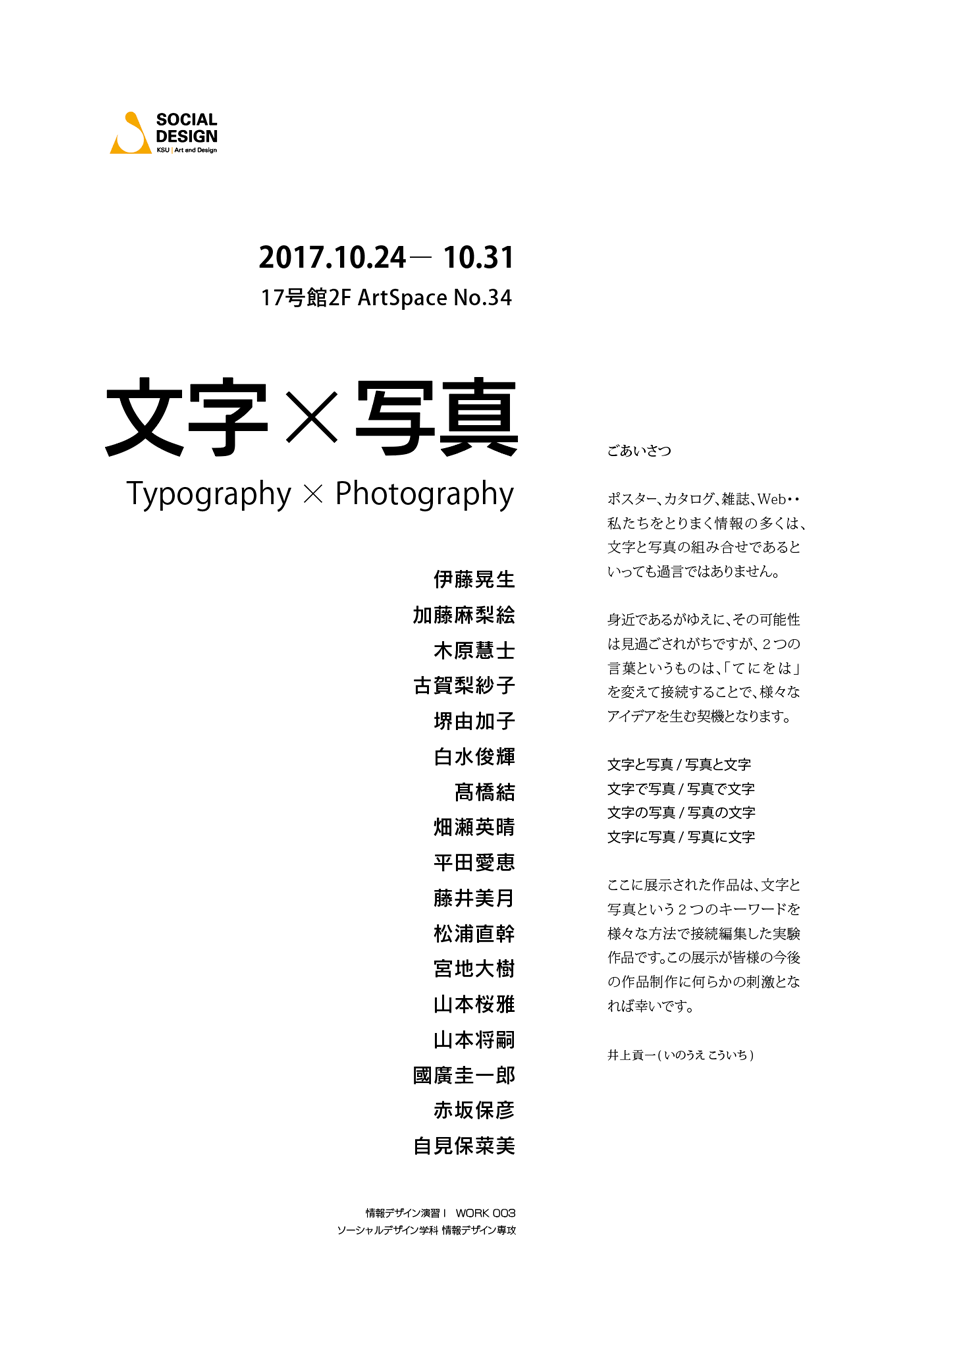 exhibition20171024.png